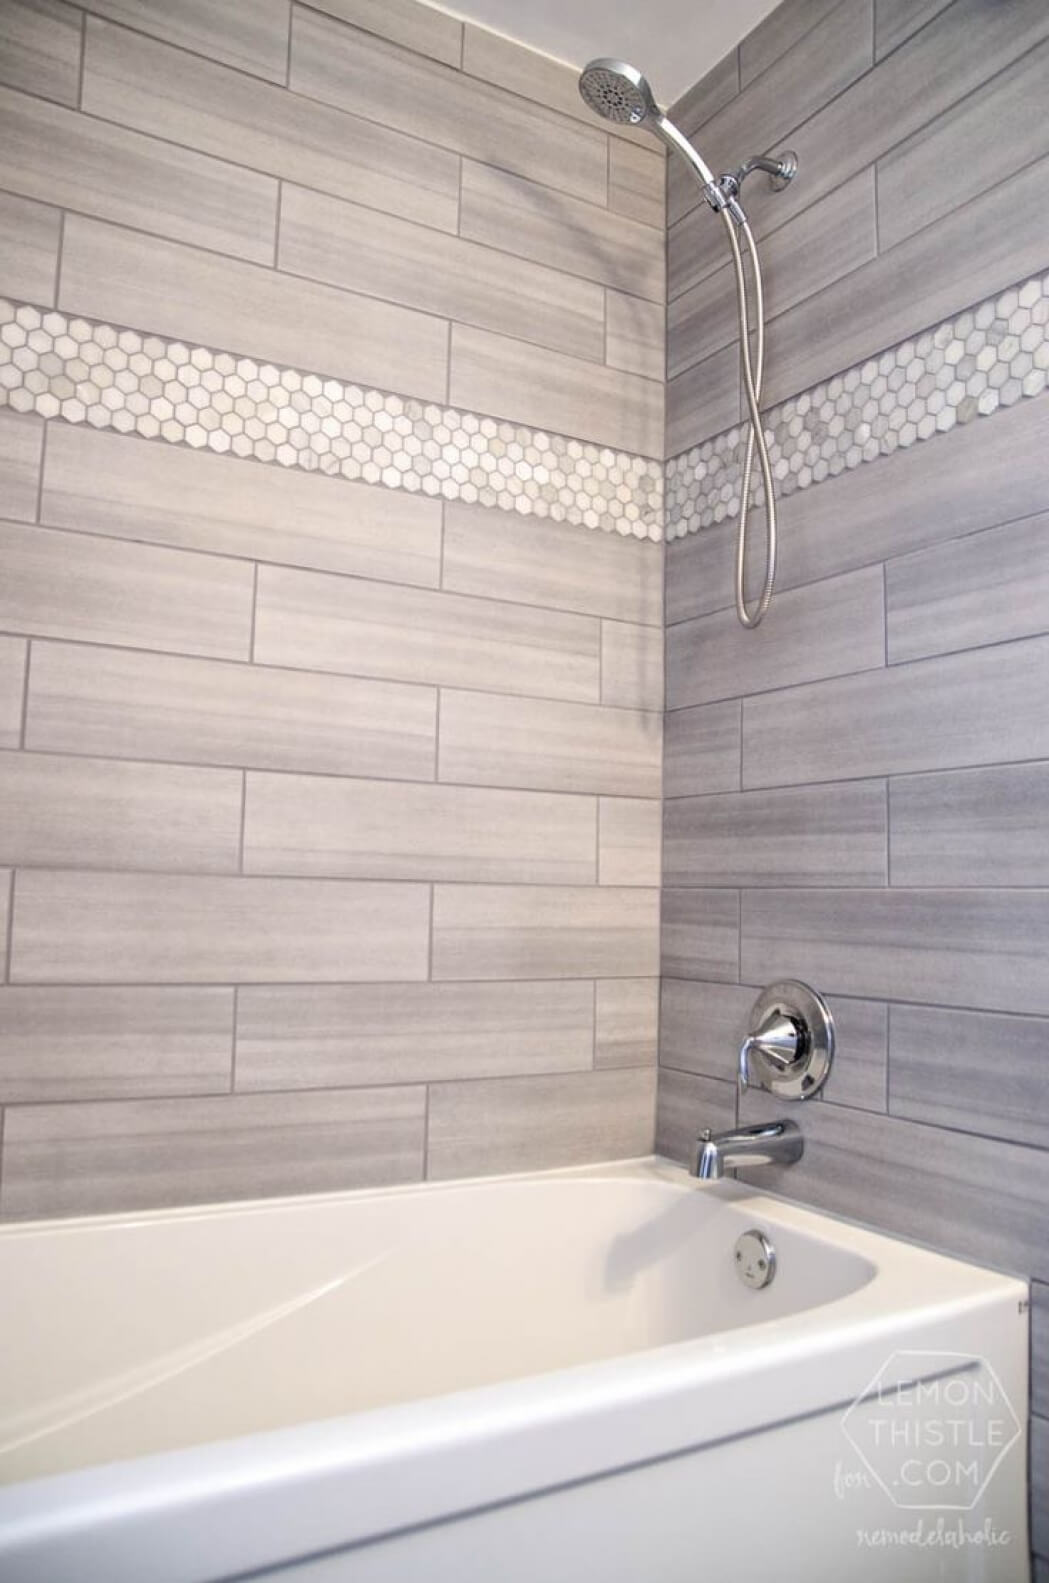 32 Best Shower Tile Ideas and Designs for 2018 Bathroom Shower Tile Pictures on bathroom walls, marble tile bathroom, bathroom decor, mold behind bathroom tile, wood look tile, bathroom subway tile, bathroom tile layout, white bathroom tiles, bathroom walk in showers, bathroom vanities, kitchen tile, bathroom wall tile, glass bathroom tile, bathroom tile colors, cheap bathroom tiles, bathroom trends 2013, tile design ideas, bathroom ceramic tile, bathroom decorative tiles, decorative bathroom tile, bathroom ideas, bath tile, slate tile bathroom, tile board, bathroom tile patterns, bathroom tile installation, bathroom backsplash, ikea bathroom tile, bathroom floor tile, bathroom tile design, bathroom tile ideas, bathroom showers product, bathroom tile cleaning products, shower tile ideas,